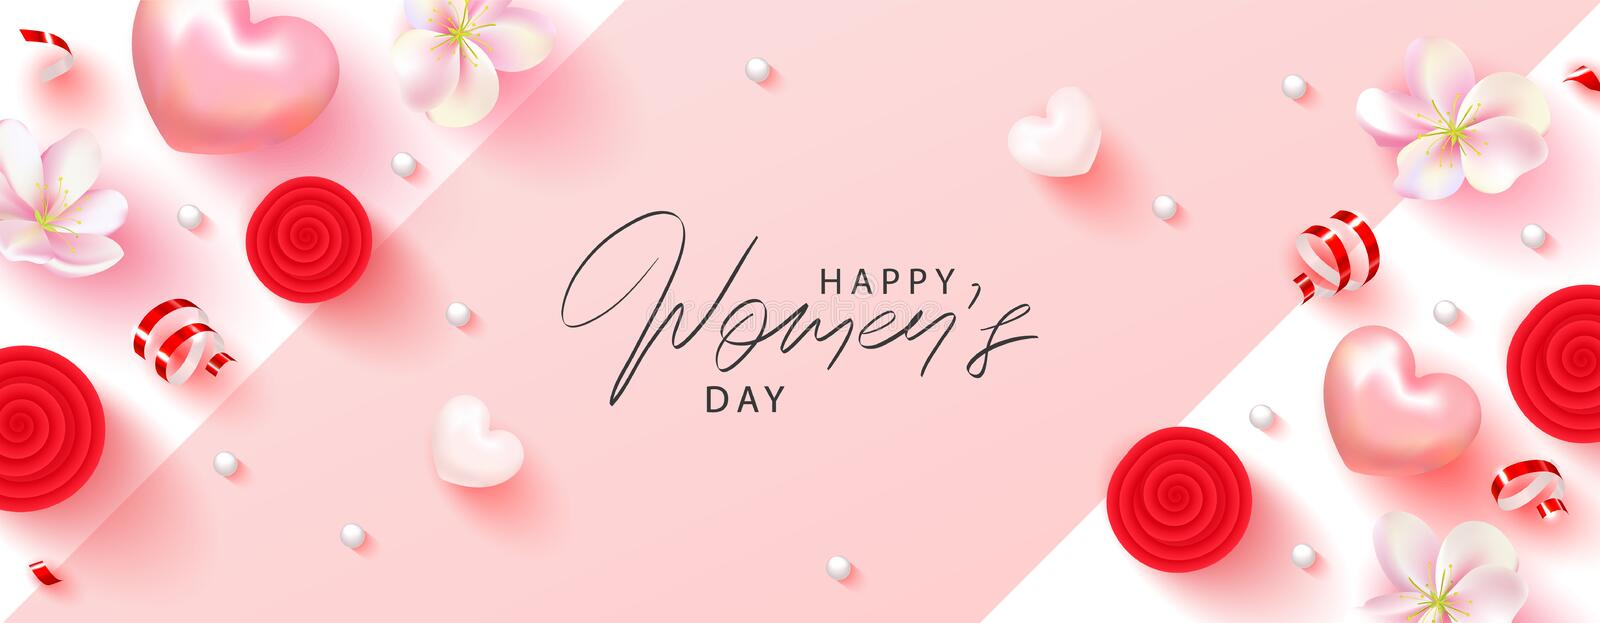 8 March Happy Womens Day banner. Beautiful Background with flowers, serpentine,hearts and gift boxes. Vector vector illustration